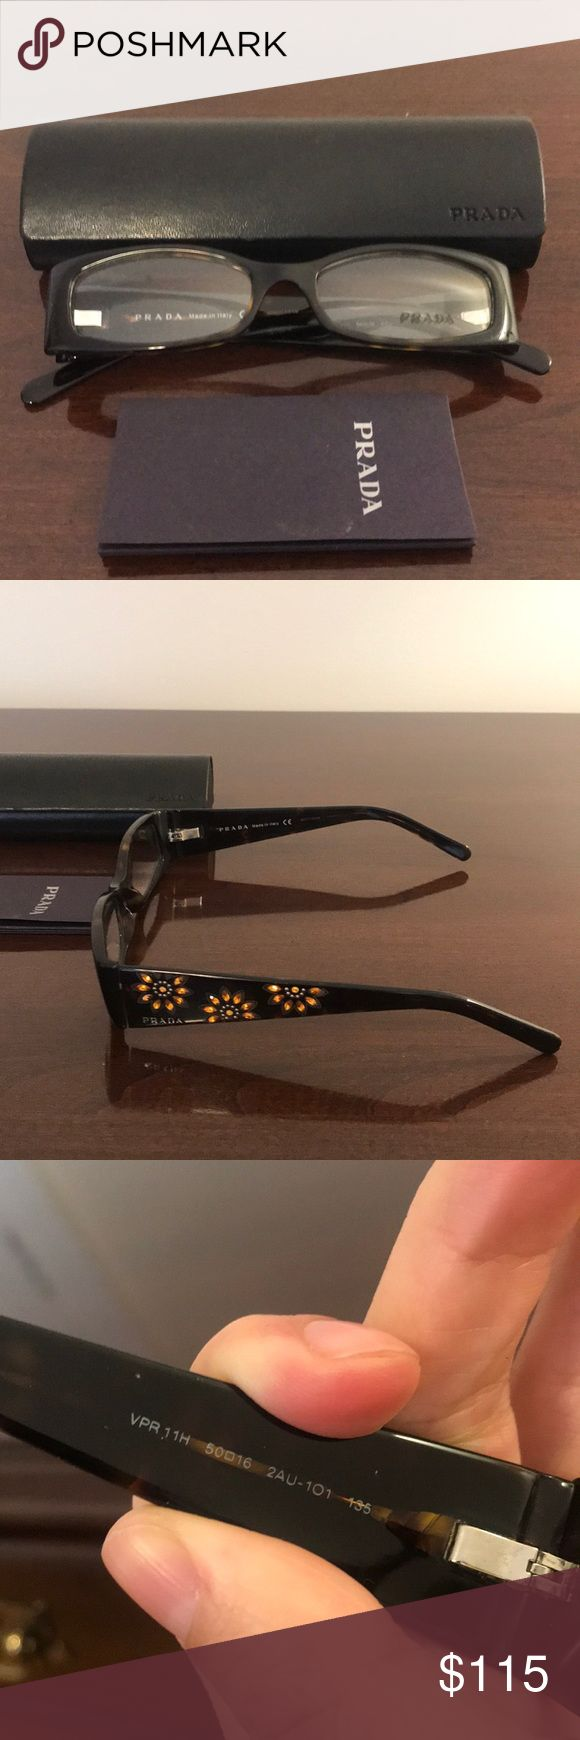 Prada Eyeglass Lenses NEVER WORN. Prada eyeglass lenses with beautiful floral detail on the sides. These have never been worn, Prada sticker is still on the lense. Prada Accessories Glasses